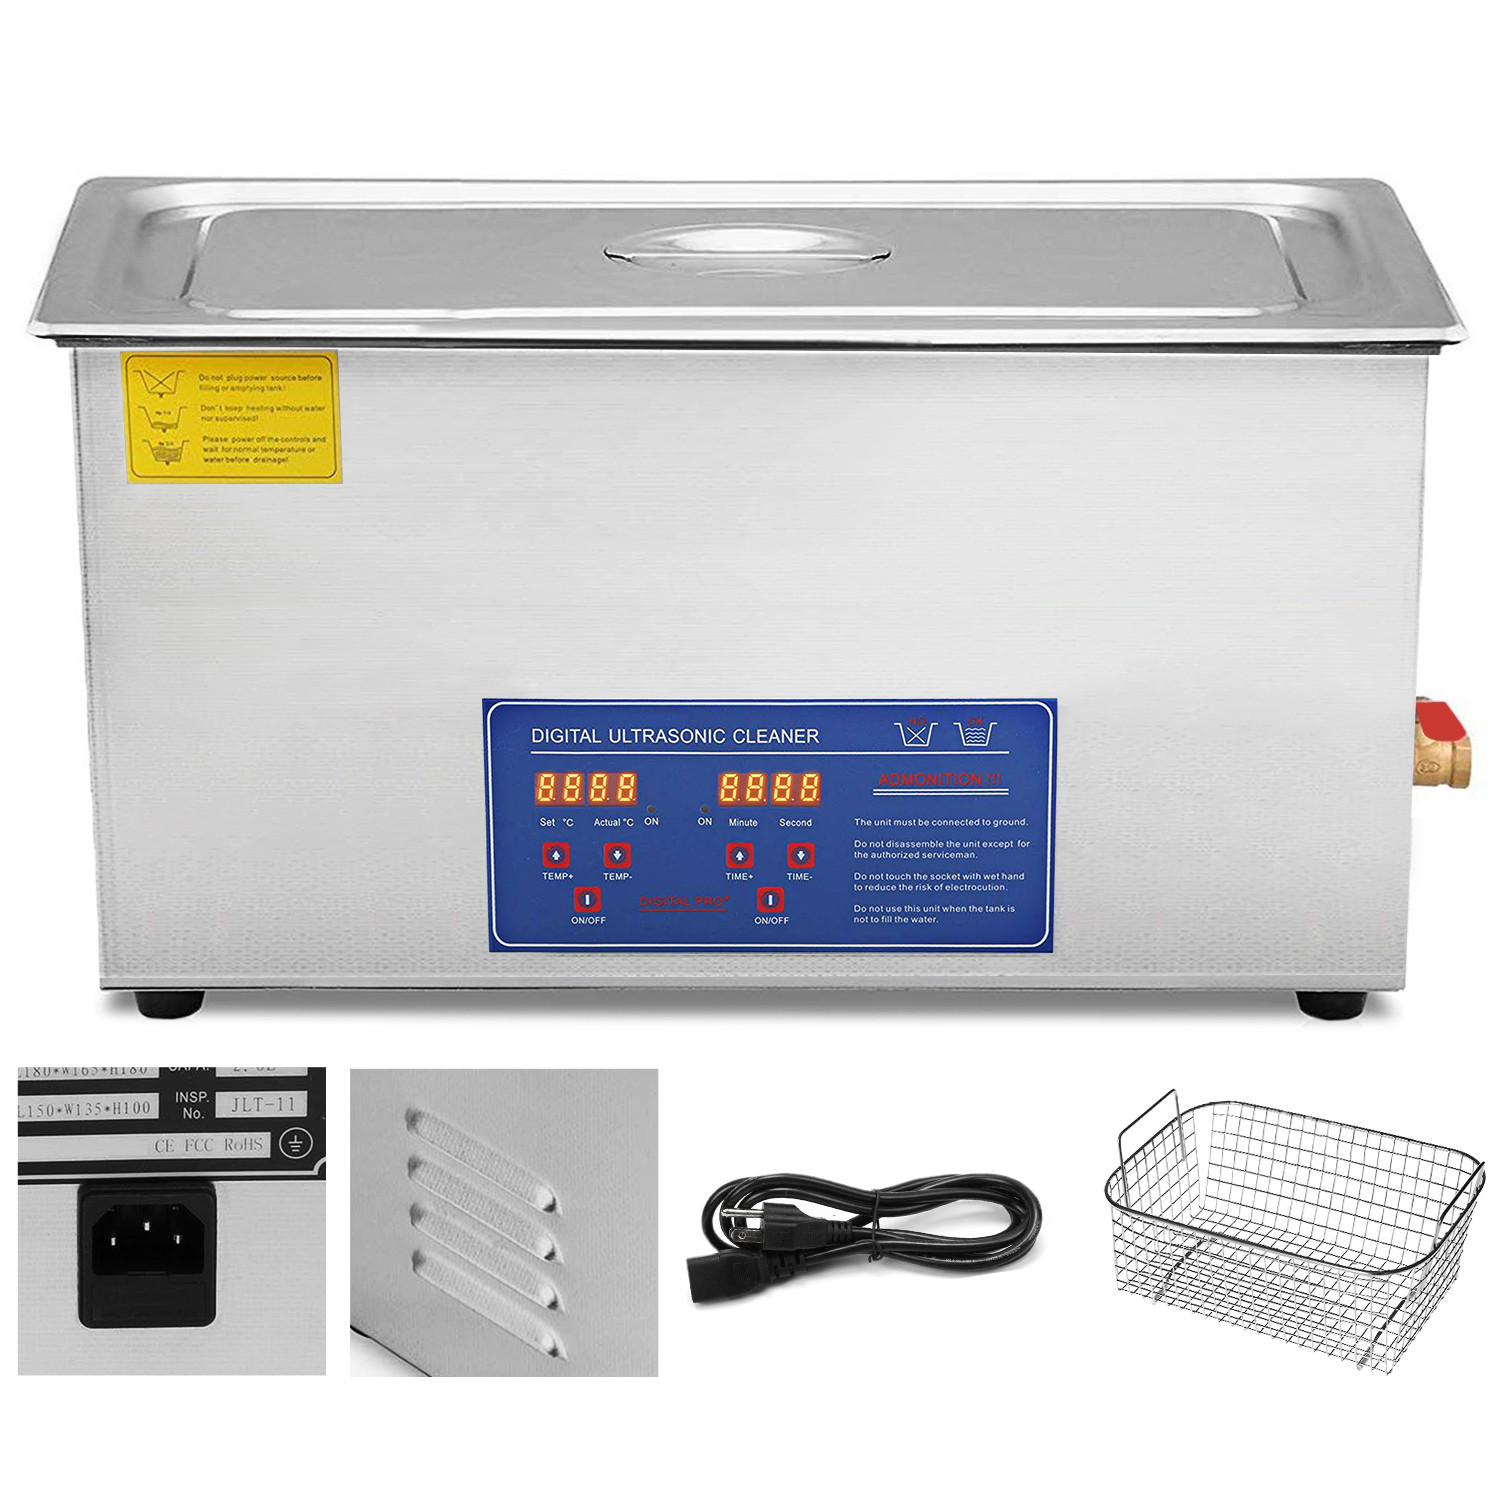 Multi-Ultrasonic-Cleaner-Supplies-Jewelry-1-3-2L-3L-6L-10L-15L-22L-30L thumbnail 96